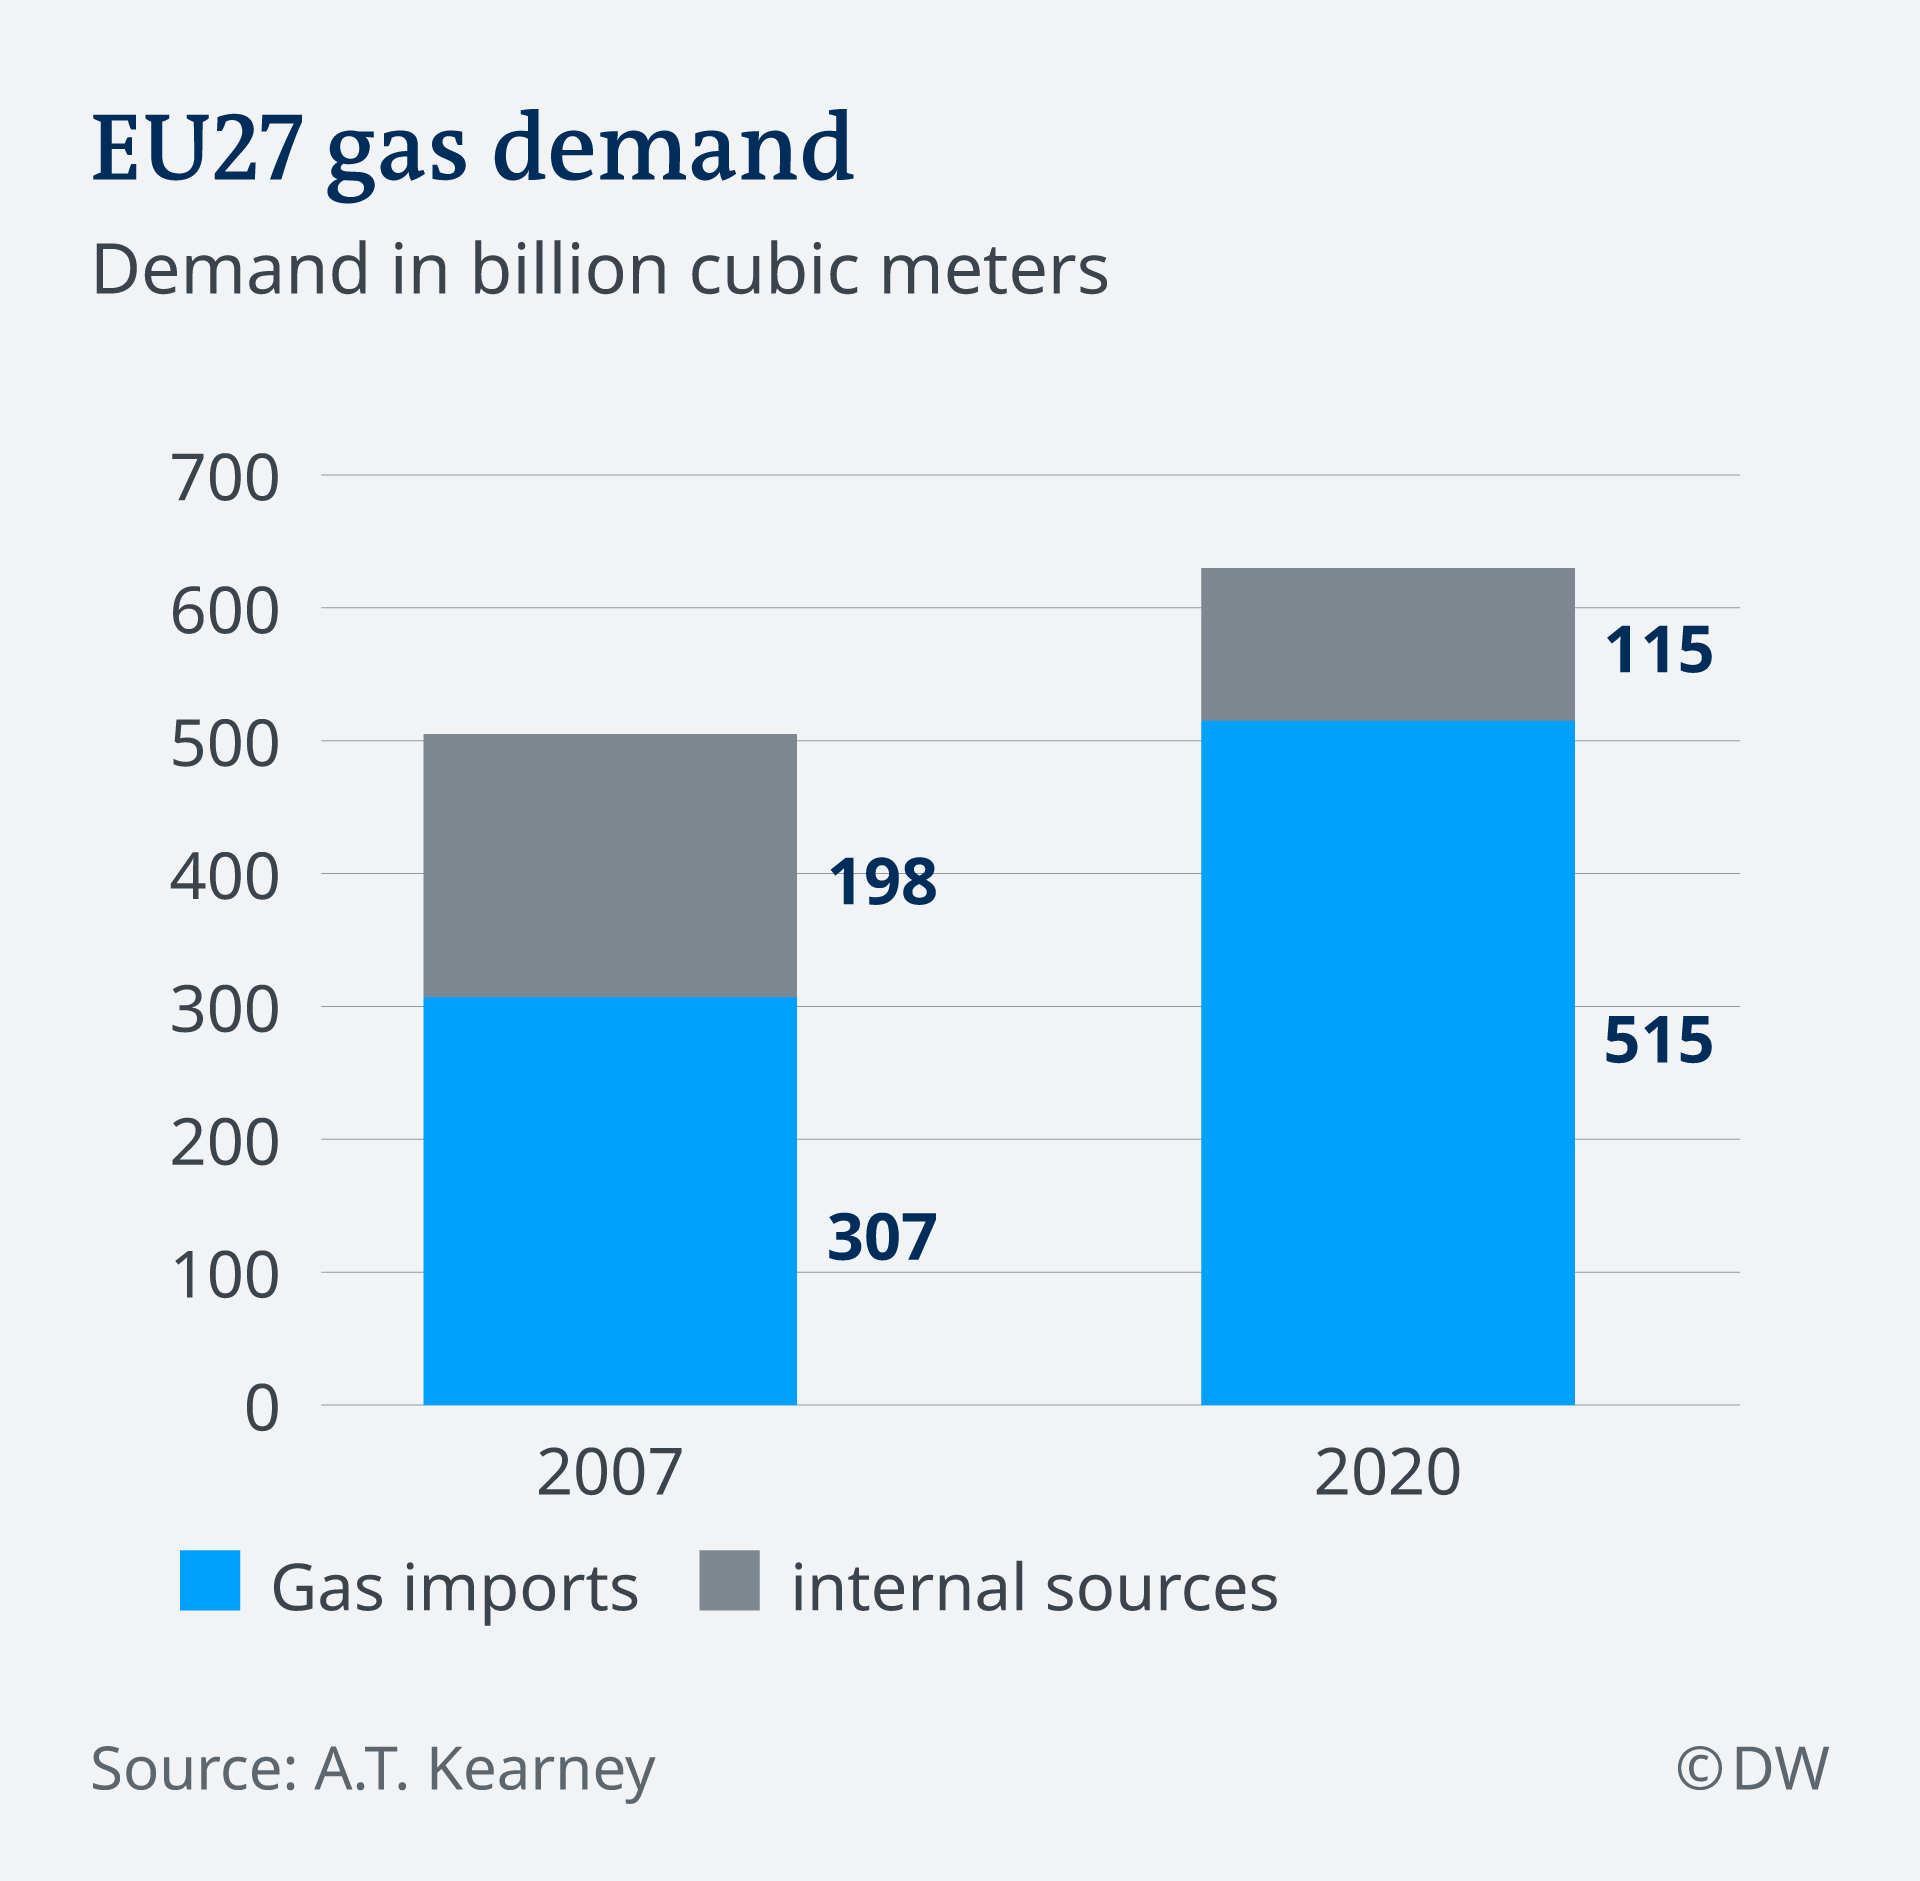 EU27 gas demand projection